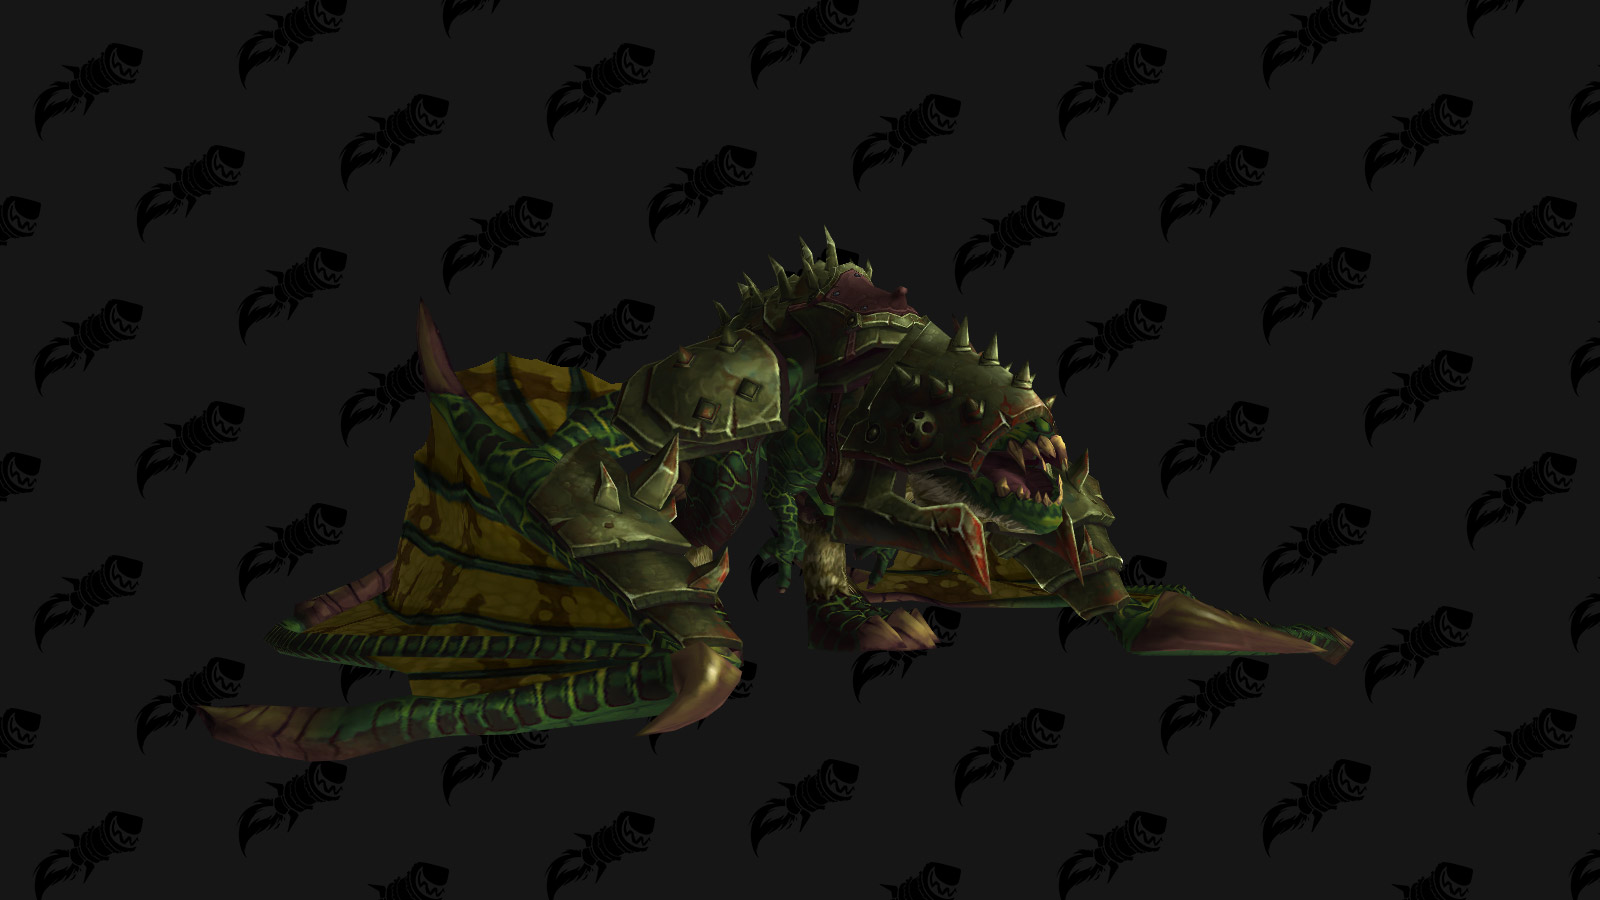 La monture Proto-drake du gladiateur vert est une monture PVP de l'extension Battle for Azeroth